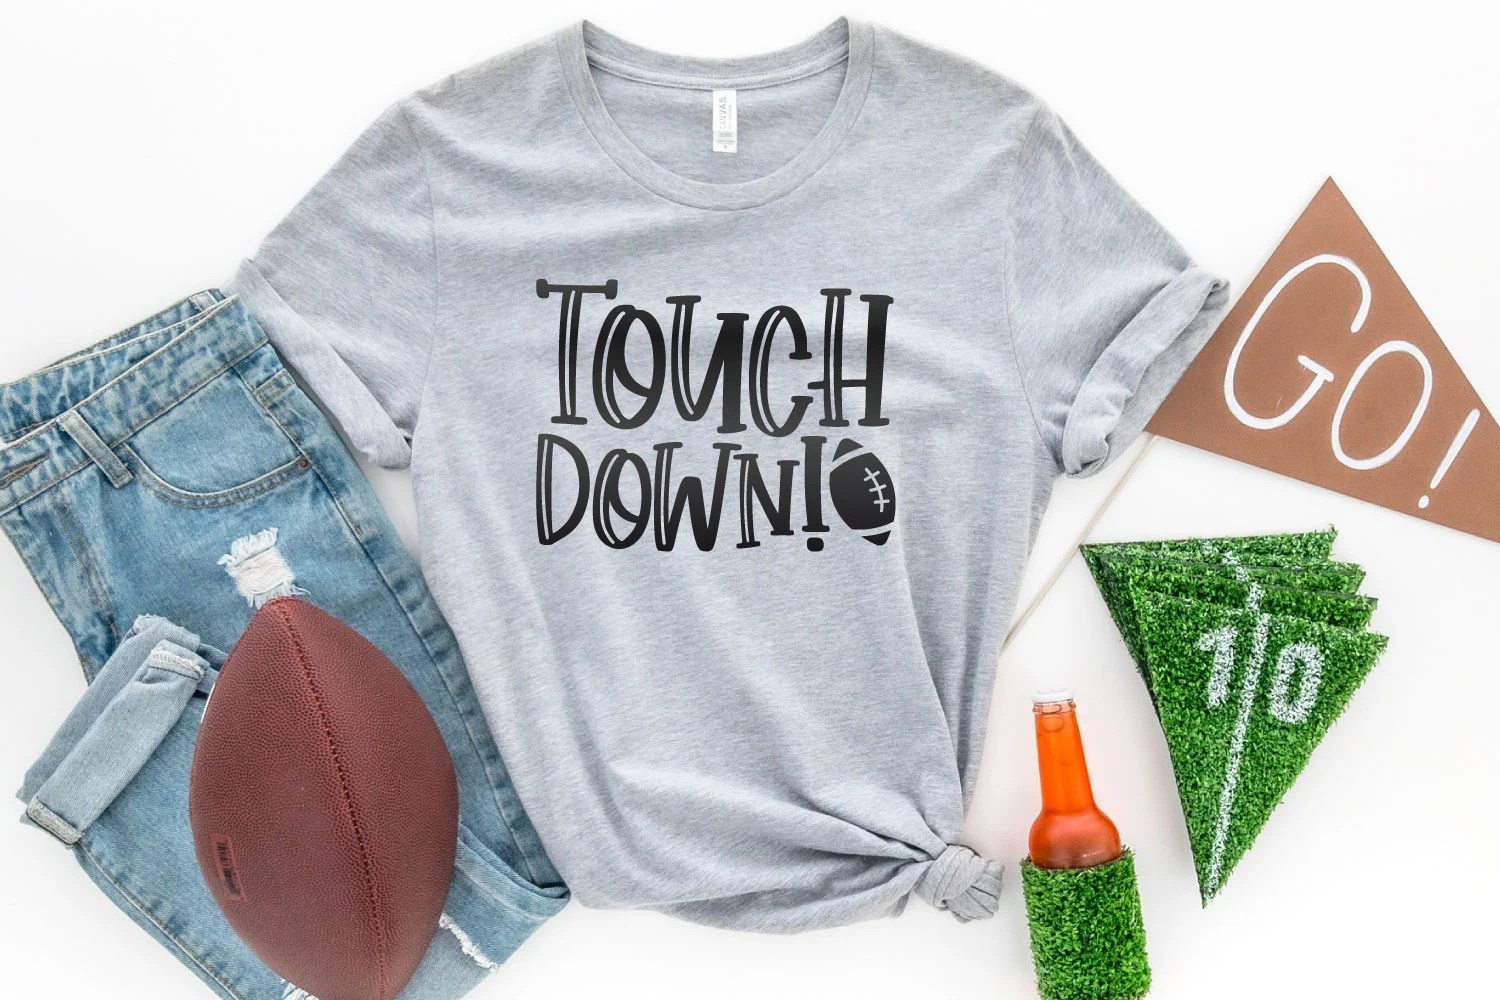 Touchdown SVG on a gray shirt with football accessories